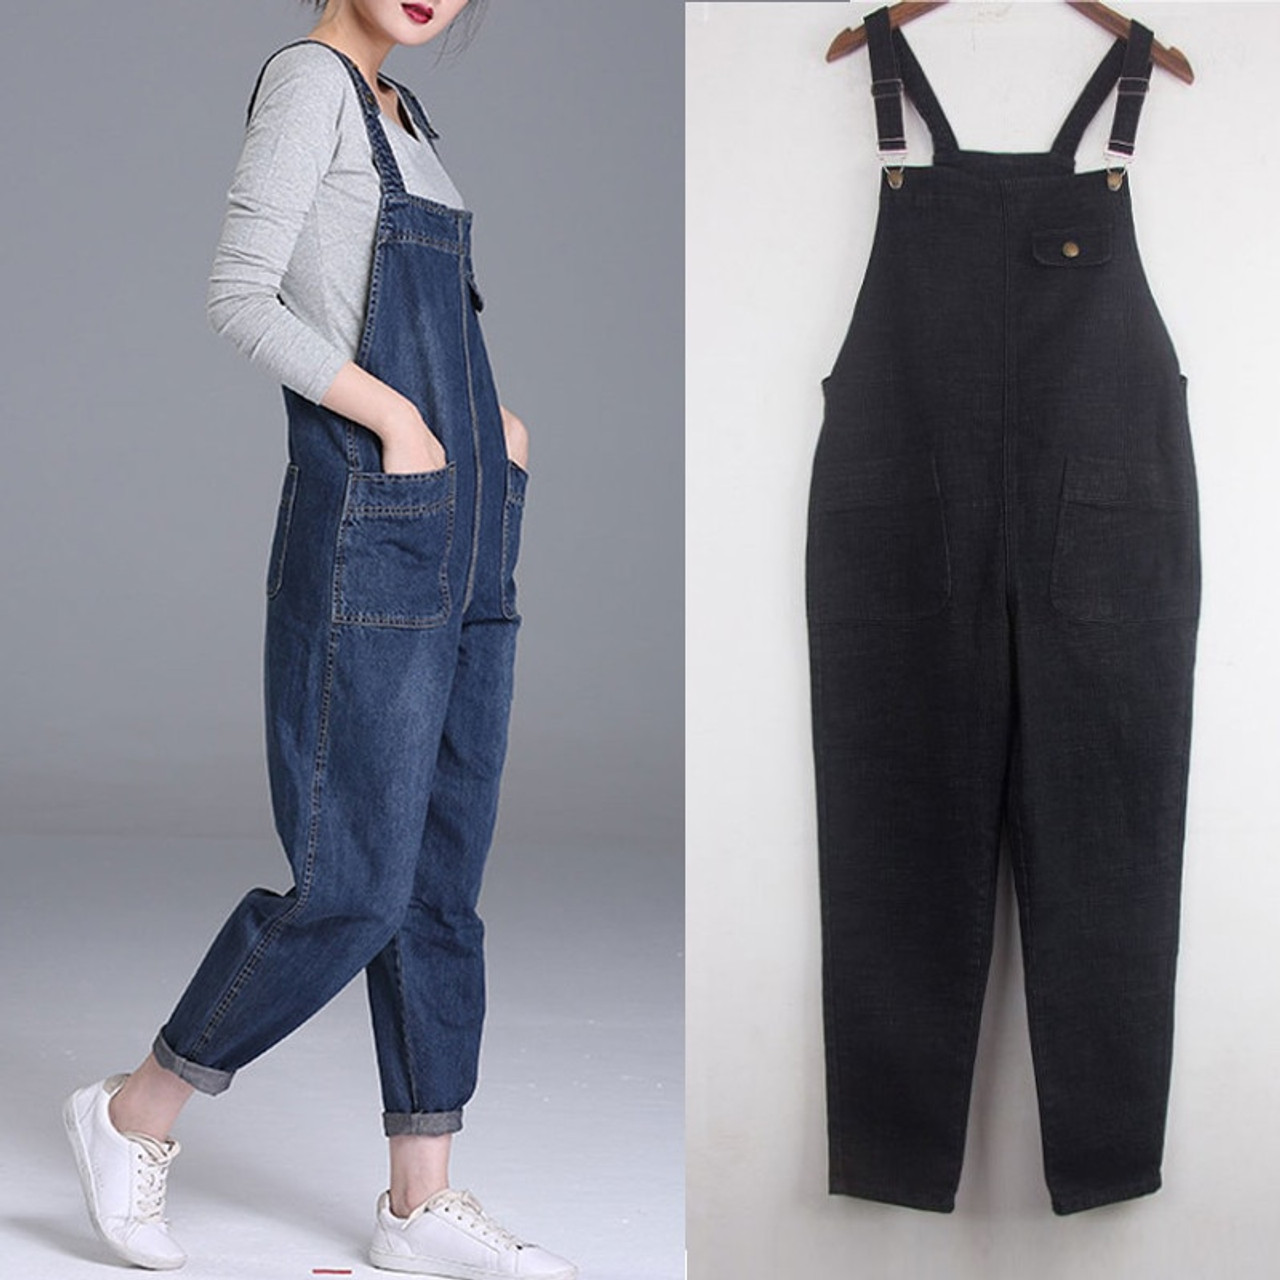 94c8cdbd5e2 Plus Size 4XL 5XL Boyfriend Jeans For Women Pockets Denim Jumpsuits Long Pants  Women Harem Jeans ...